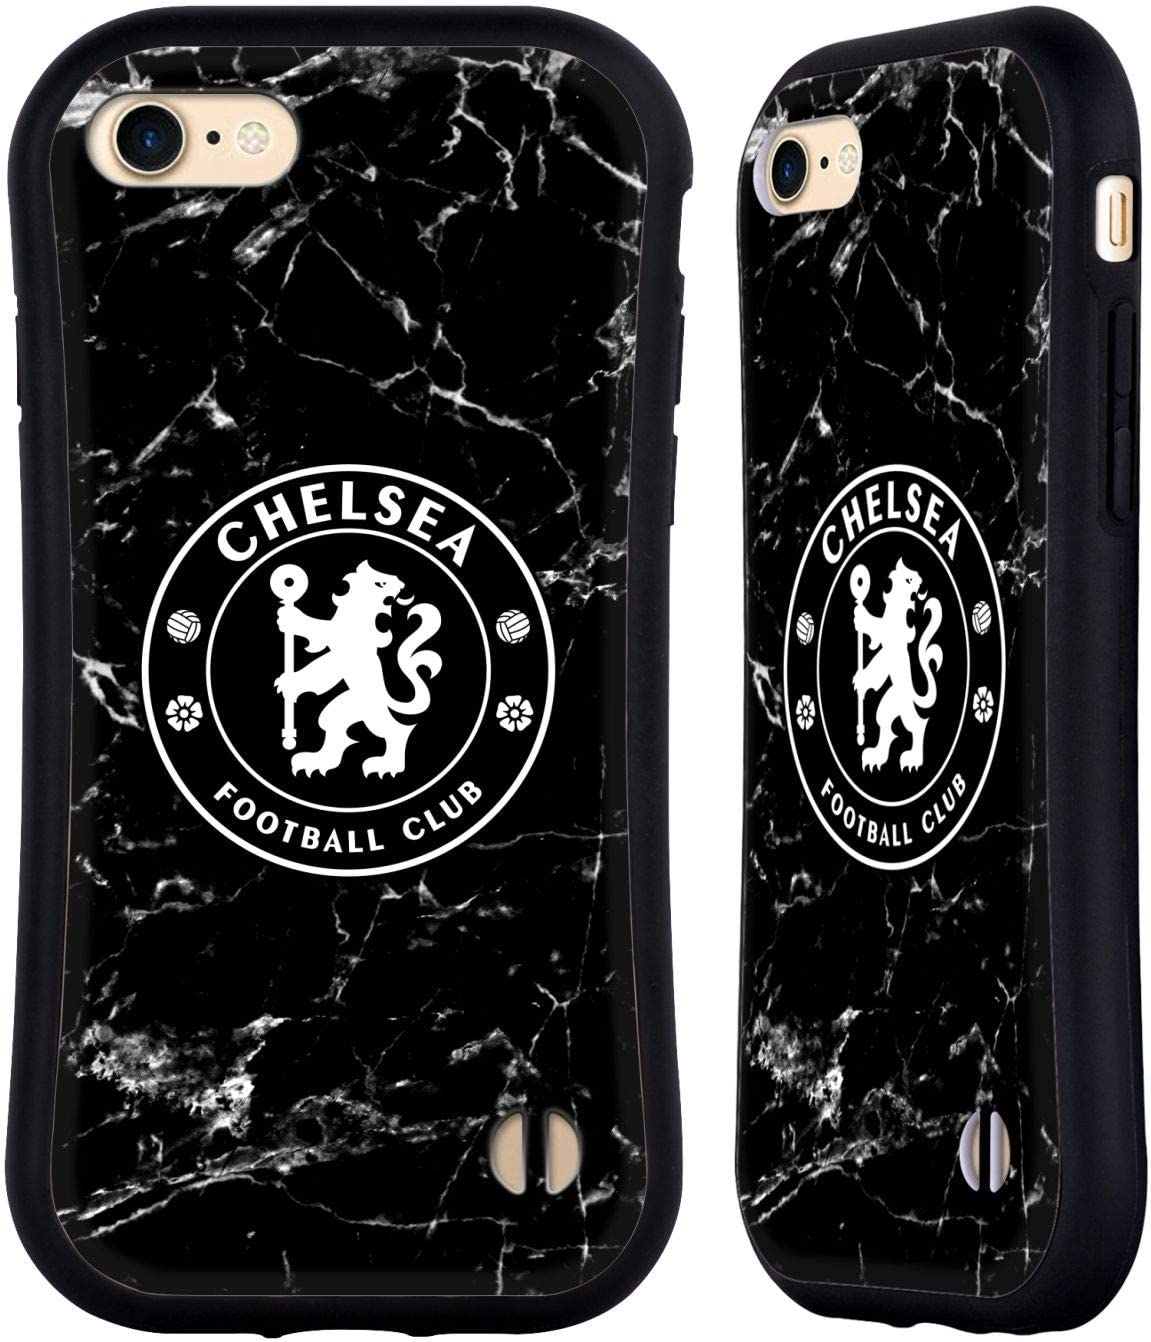 Head Case Designs Officially Licensed Chelsea Football Club Black Marble Crest Hybrid Case Compatible with Apple iPhone 7 / iPhone 8 / iPhone SE 2020